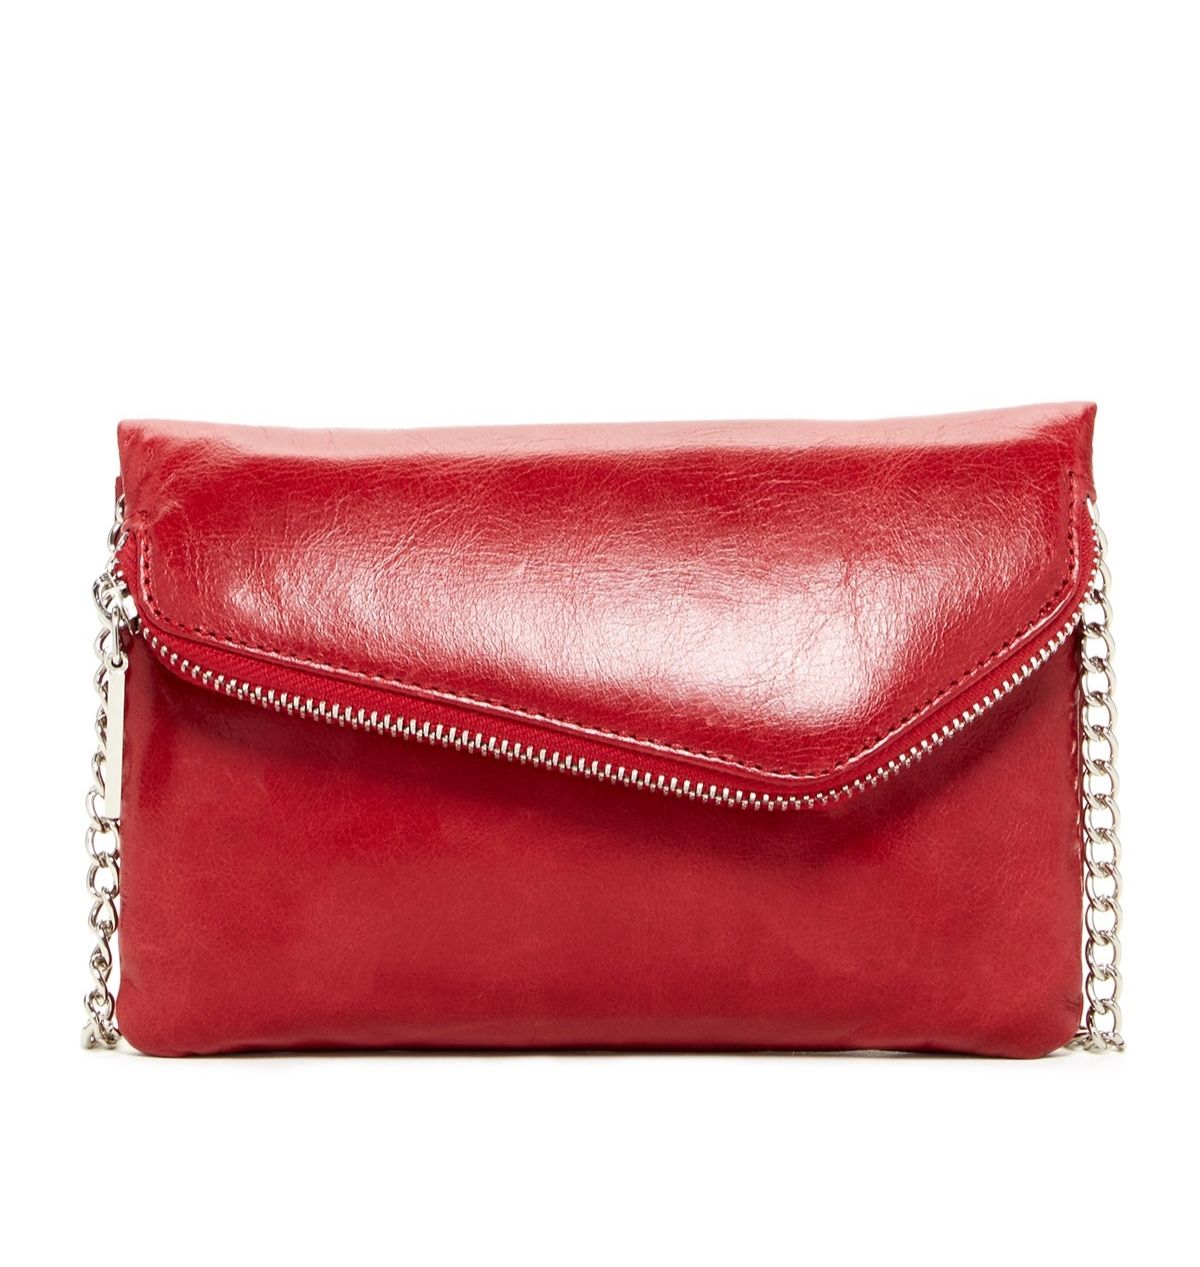 Gorgeous red clutch.